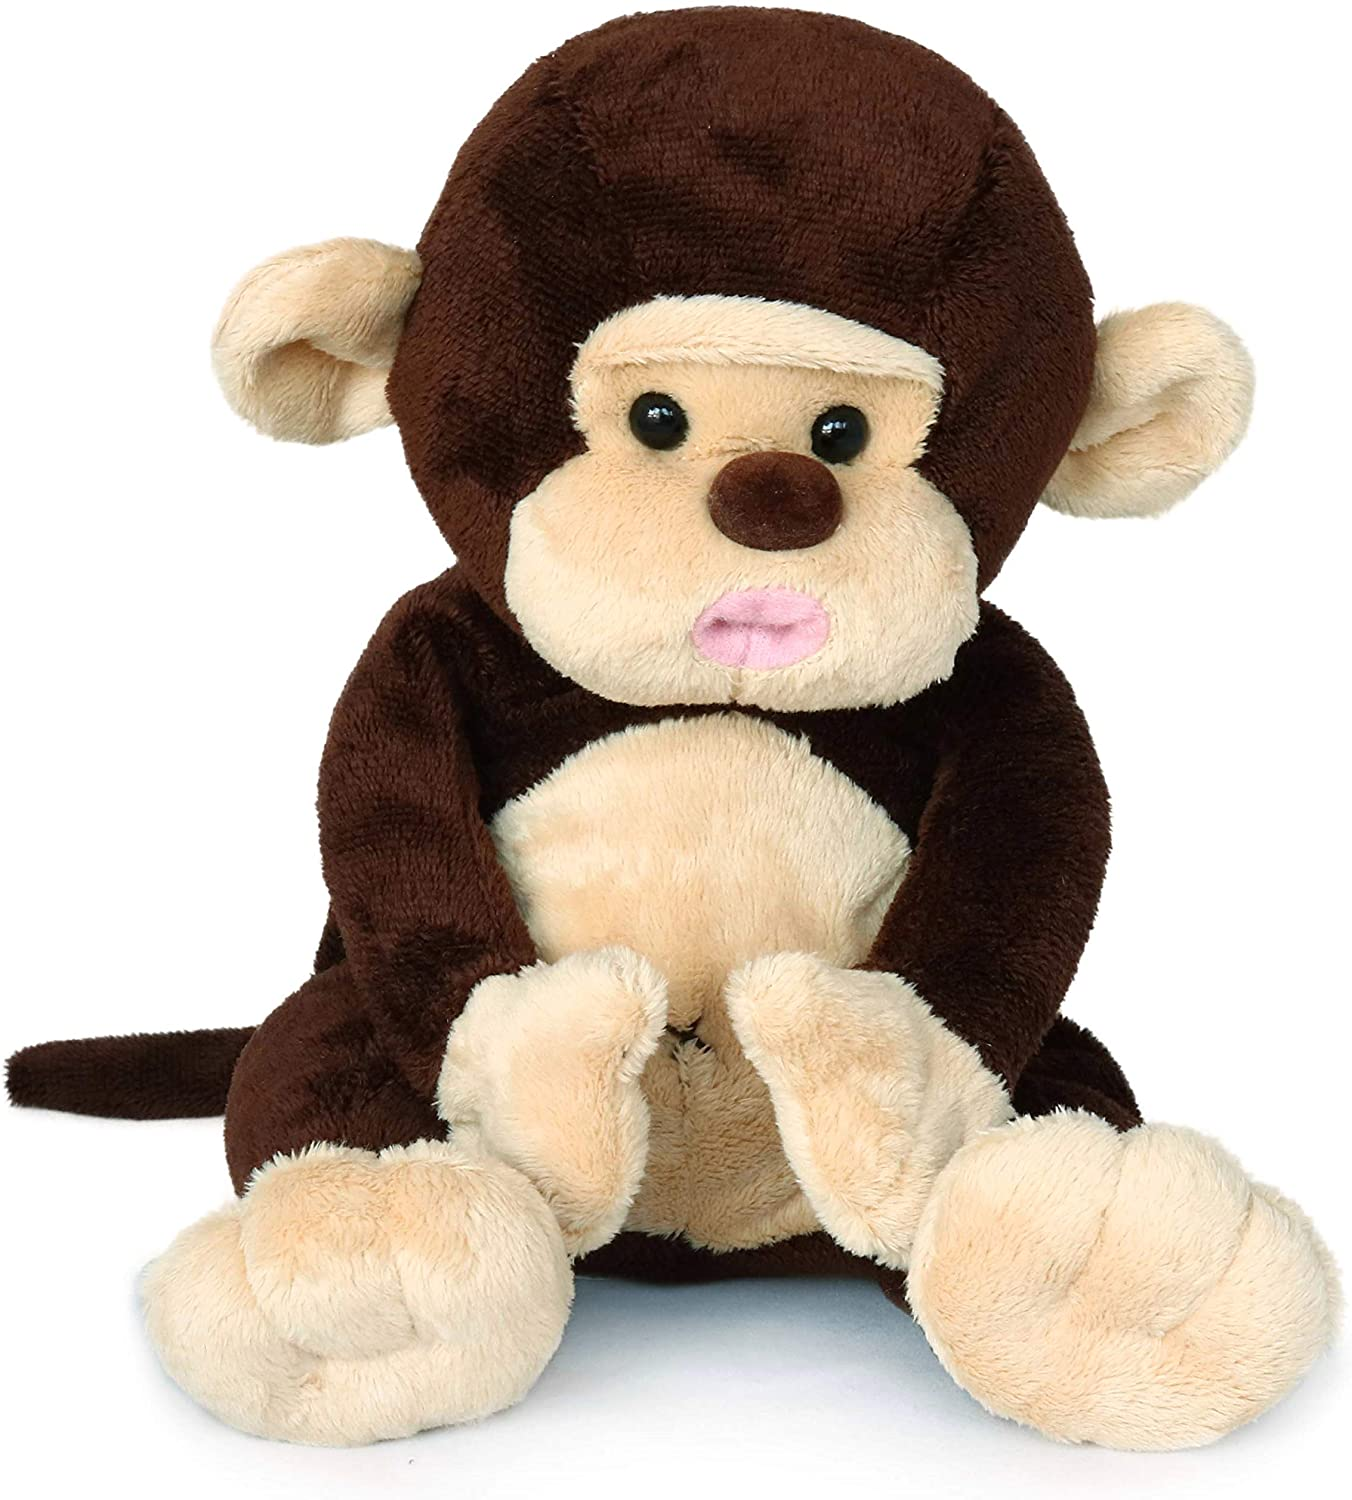 Chocolate Monkey Stuffed Animal Plush Toy, for Kids Baby,8 Inches (Original)